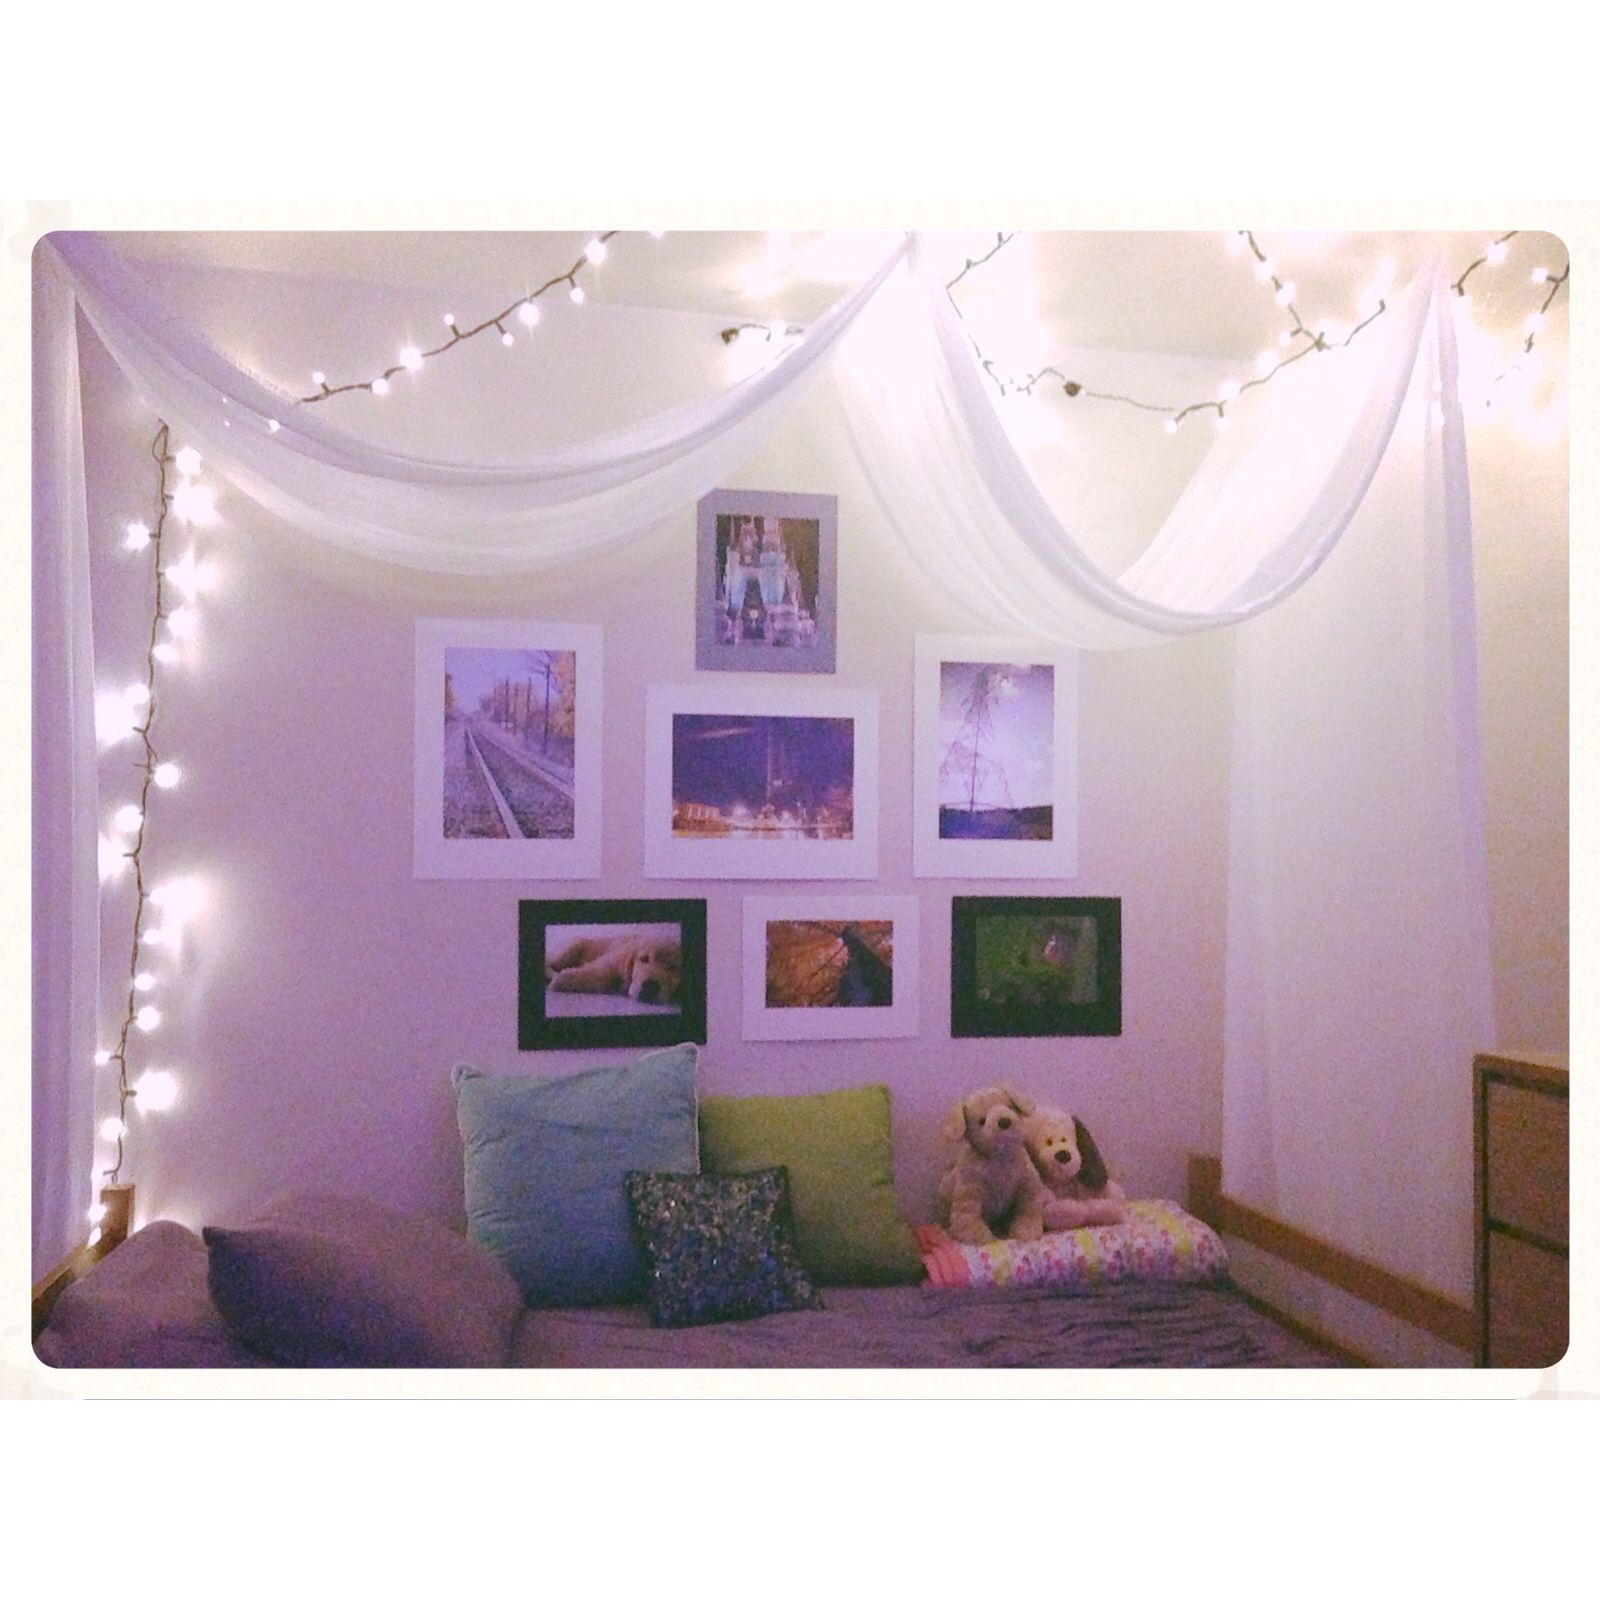 christmas lights, diy canopy, and pictures to help decorate my